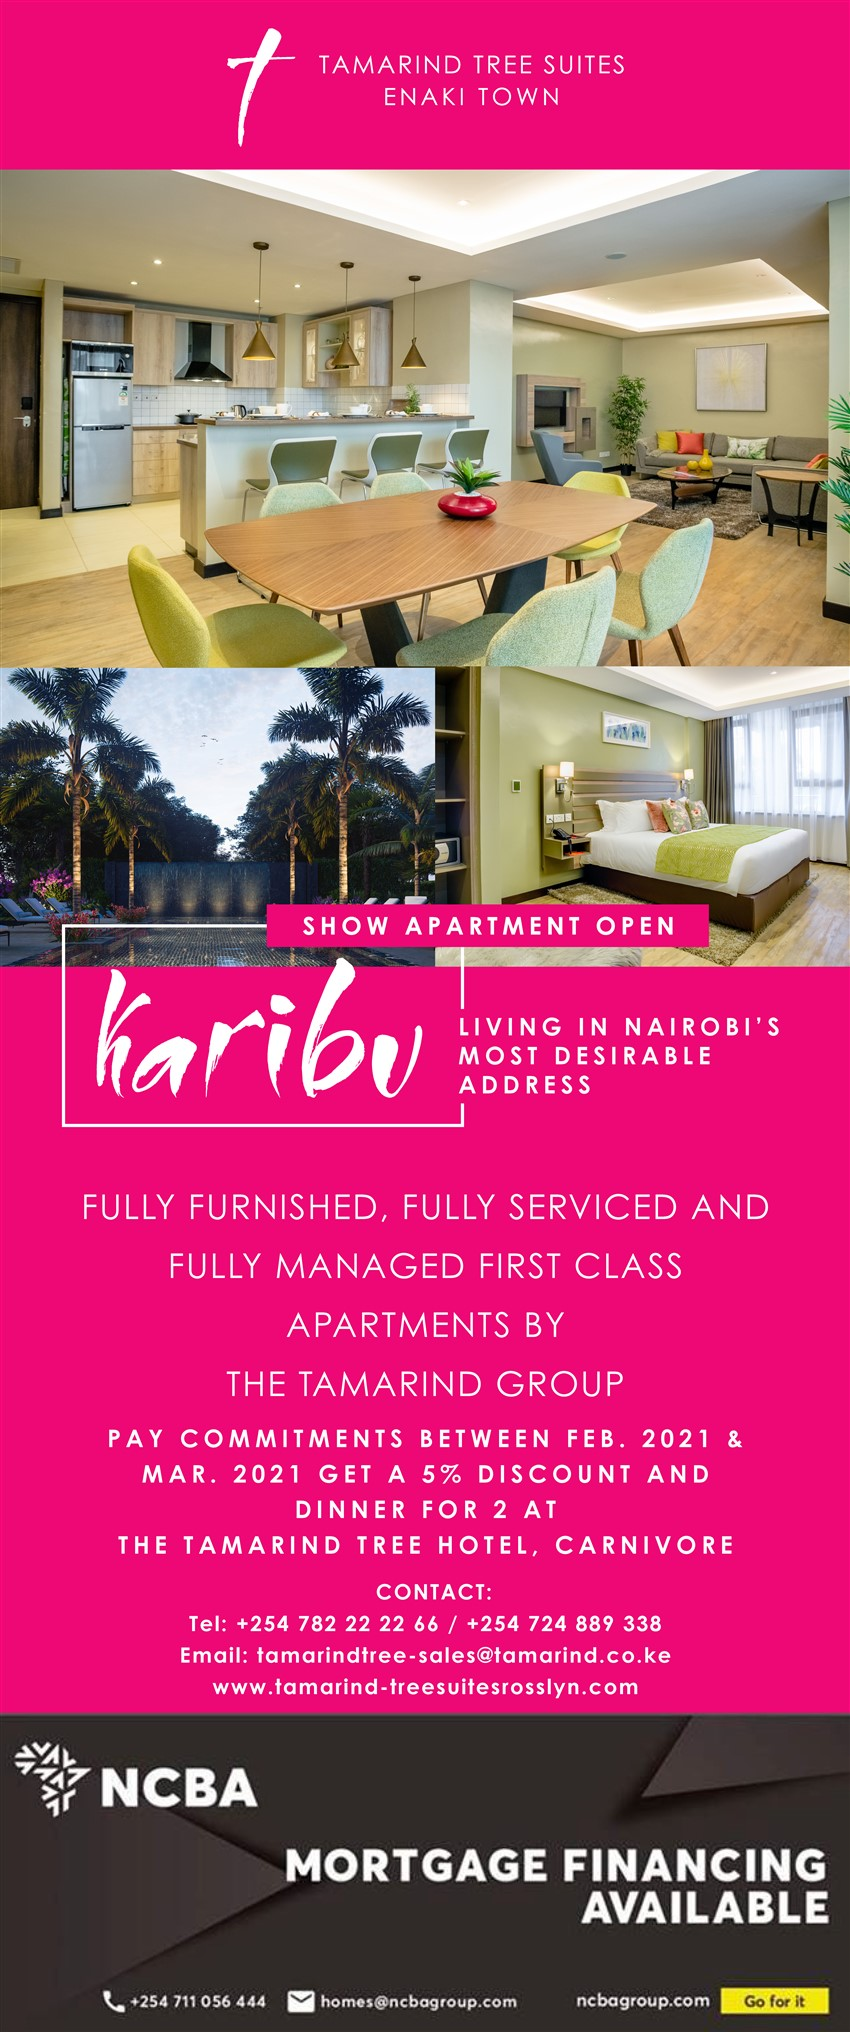 Template TAMARIND TREE SUITES: Living In Nairobi's Most Desirable Address